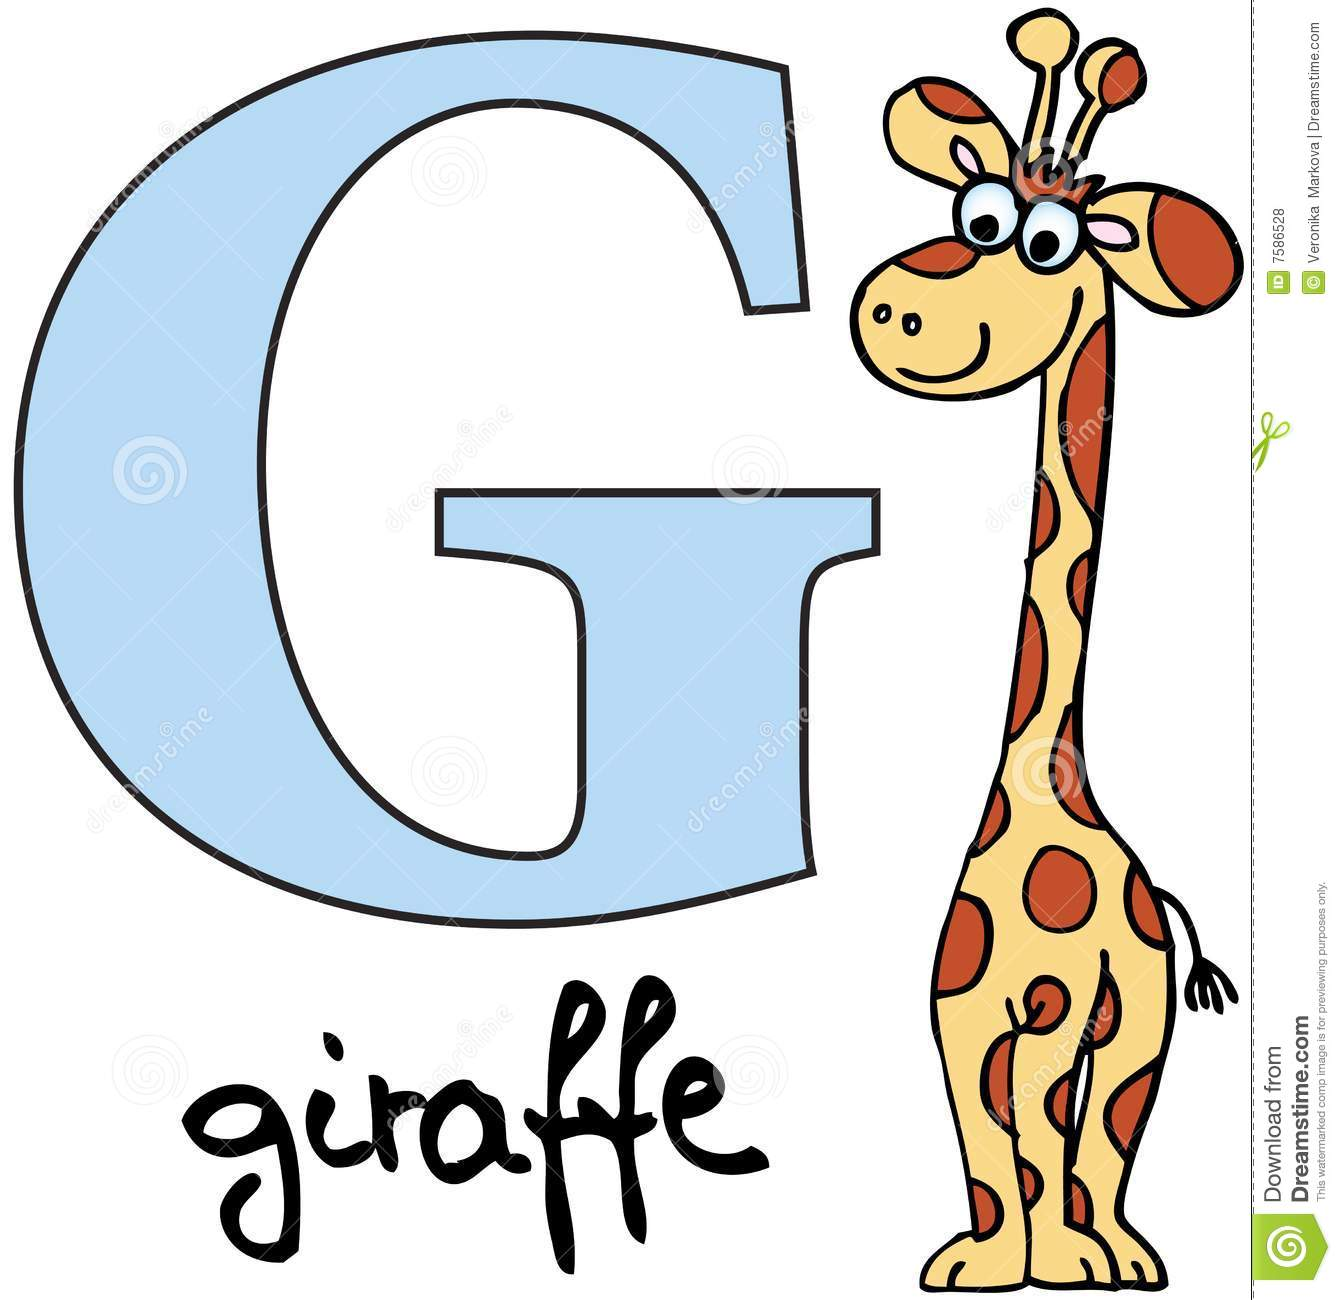 Animal Alphabet G (giraffe) Royalty Free Stock Photos - Image: 7586528